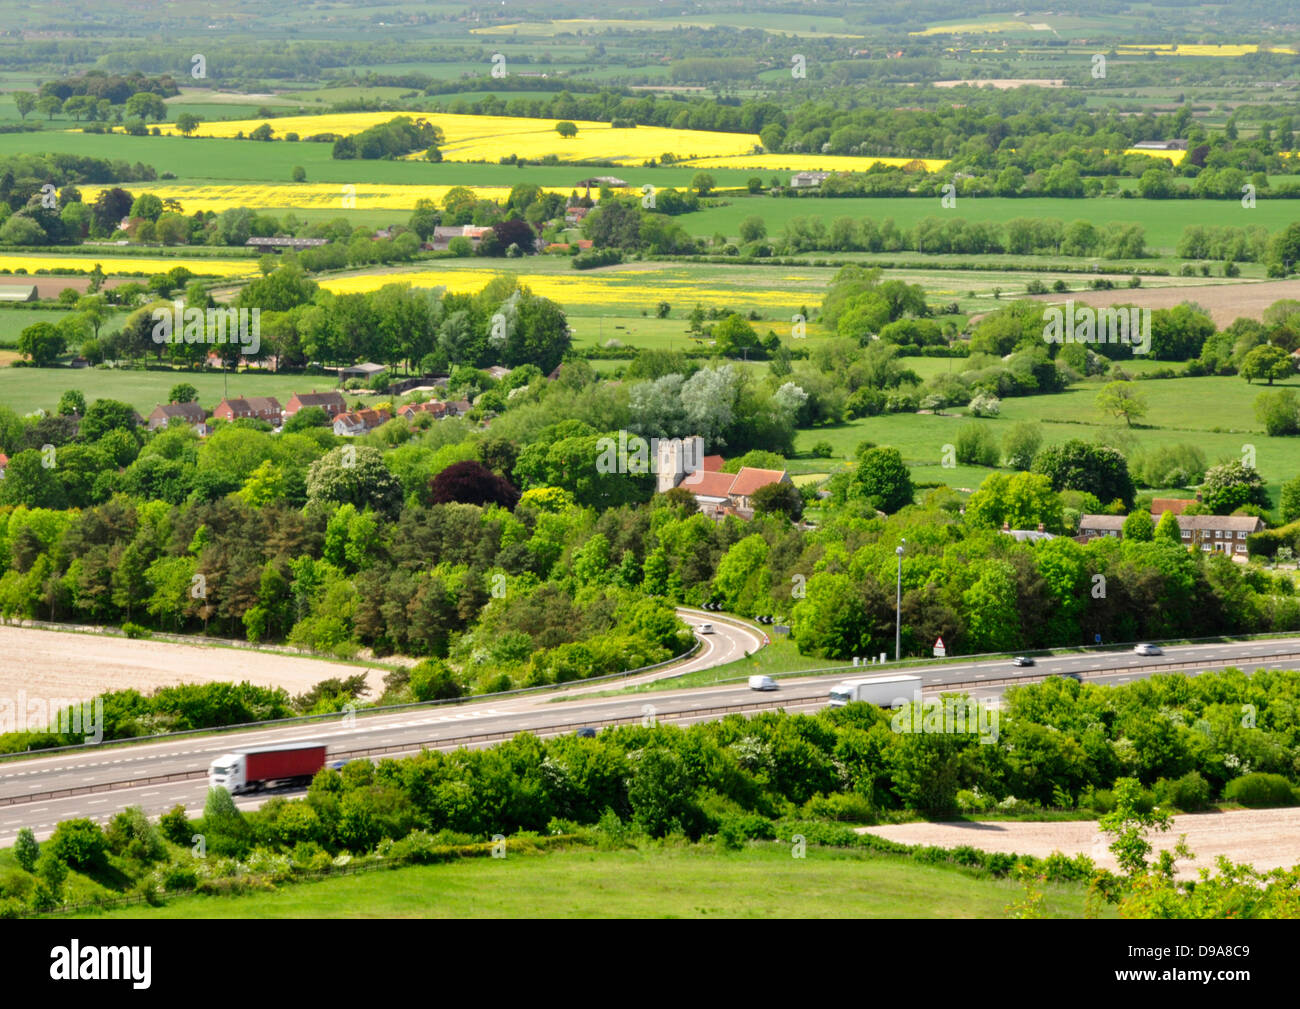 Oxon - Chiltern Hills -rural landscape - viewpoint above M40 and Lewknor village - trees and fields beyond - early - Stock Image